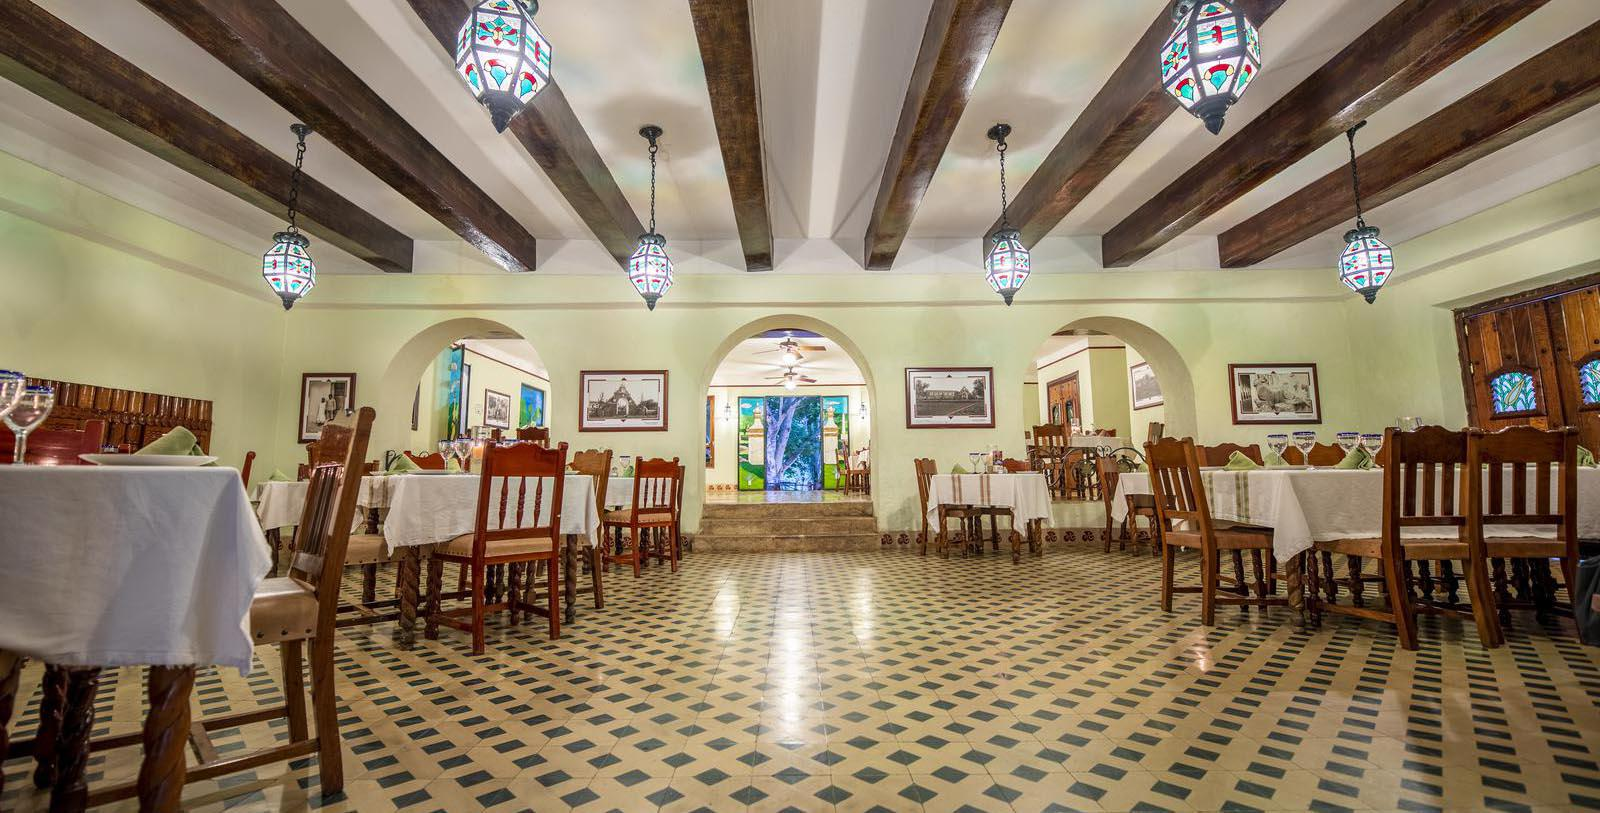 Image of Restaurant of the Hacienda Uxmal Plantation & Museum in Uxmal, Yucatan, Mexico